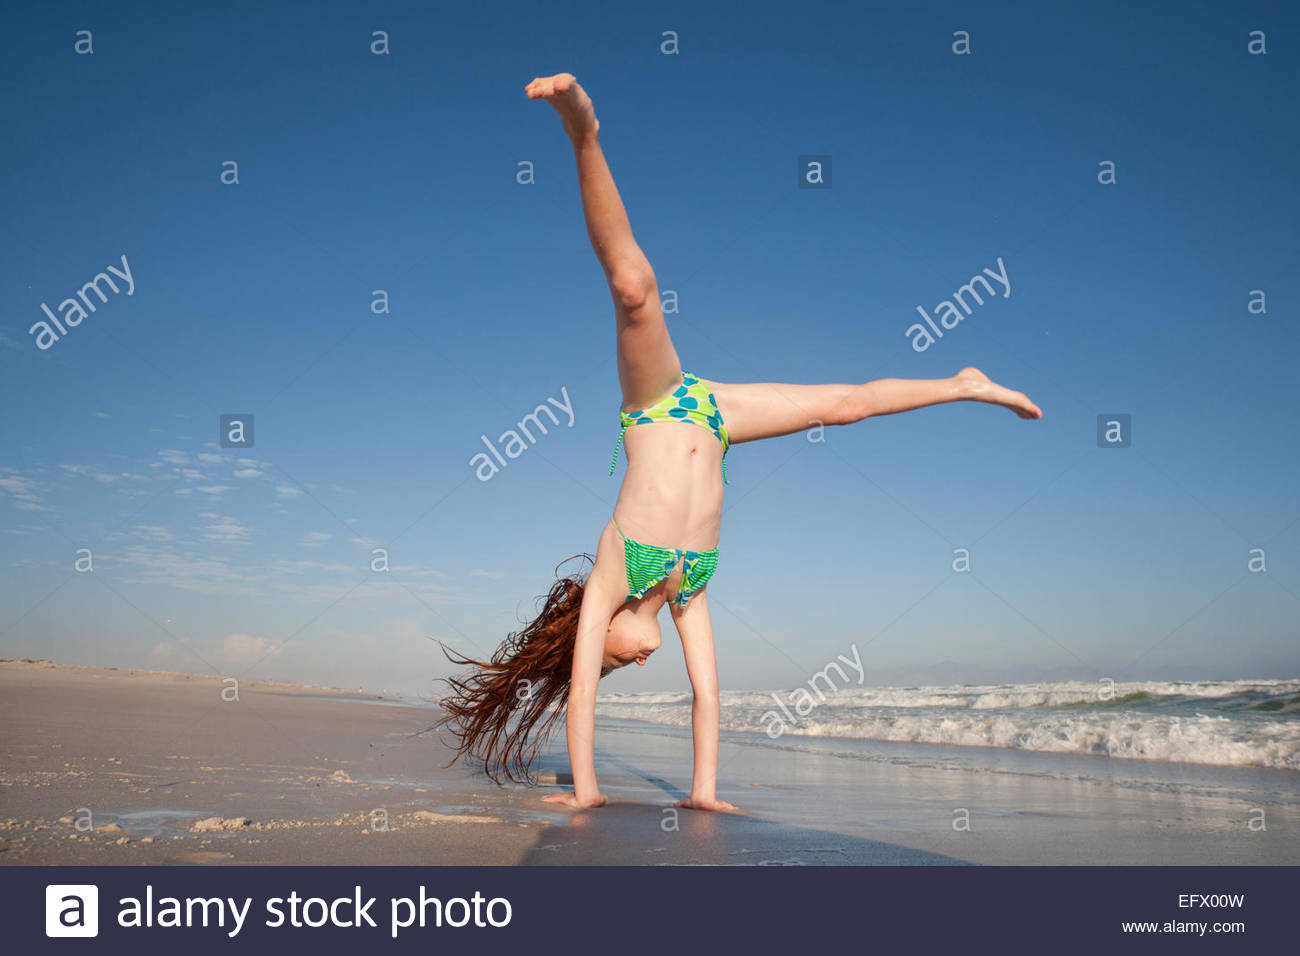 Redheaded Girl doing handstand on sunny beach - Stock Image